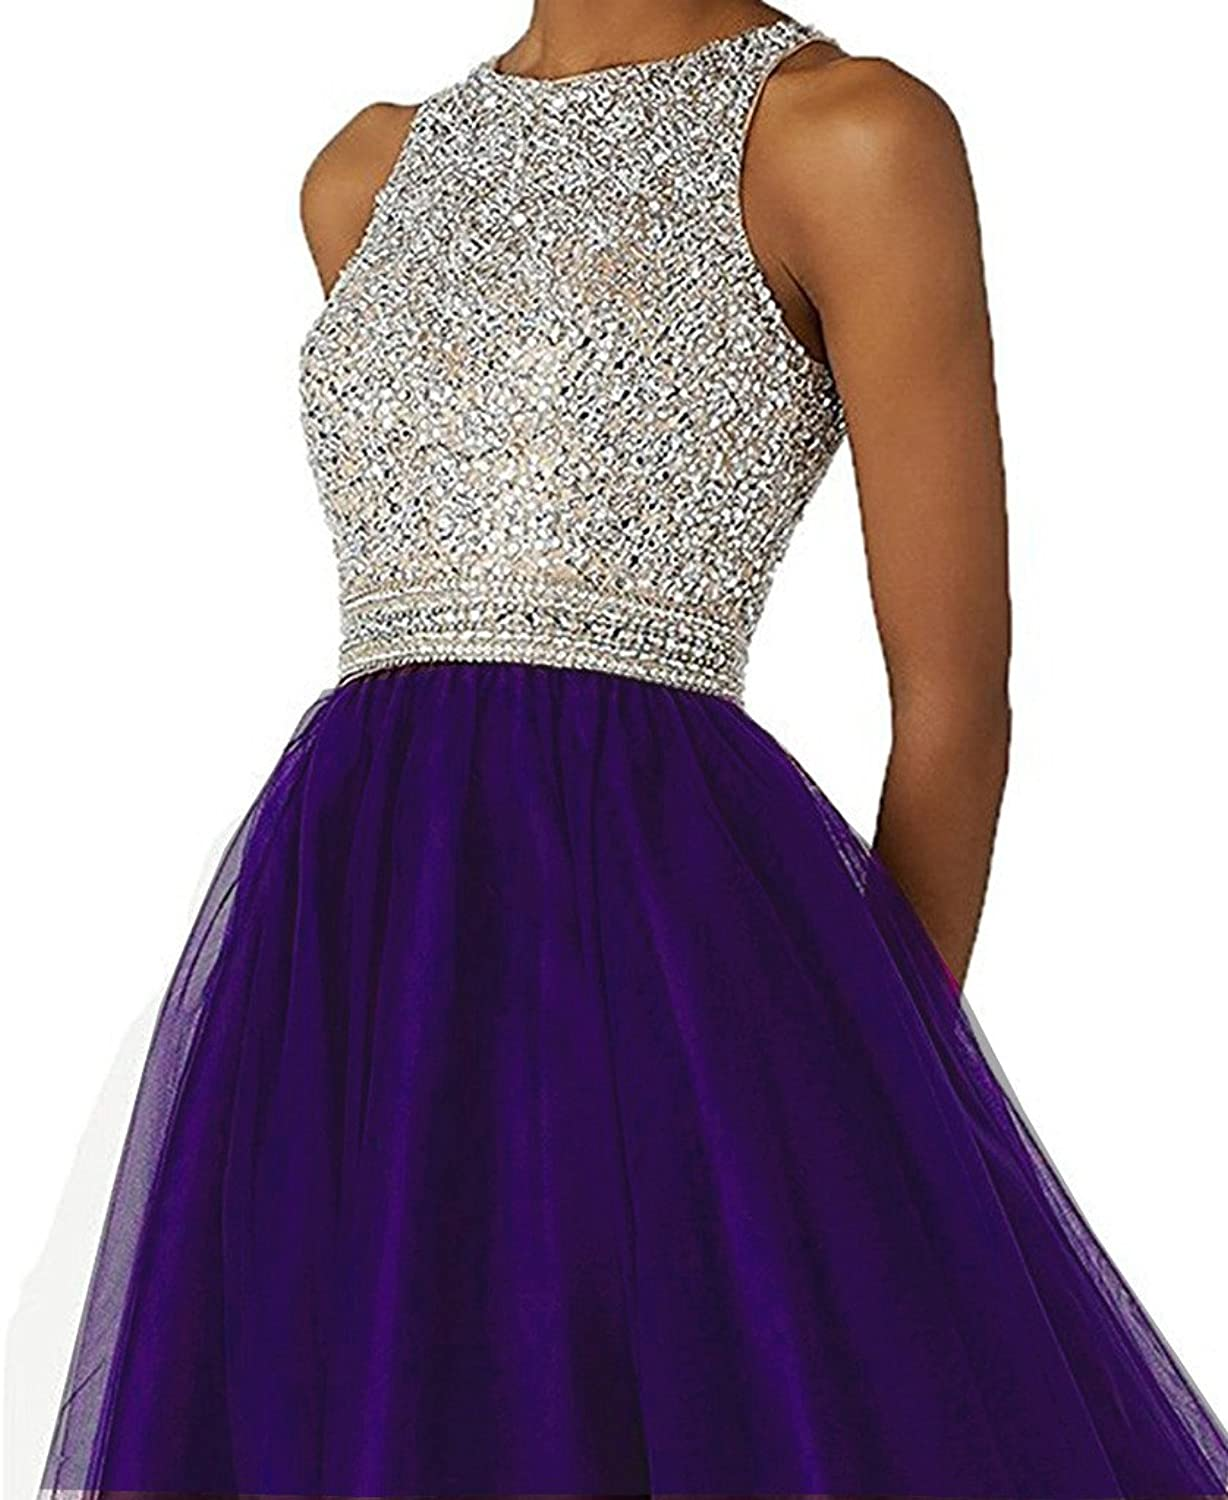 Sound of blossoming Short Beading Homecoming Dress Open Back Prom Gown148